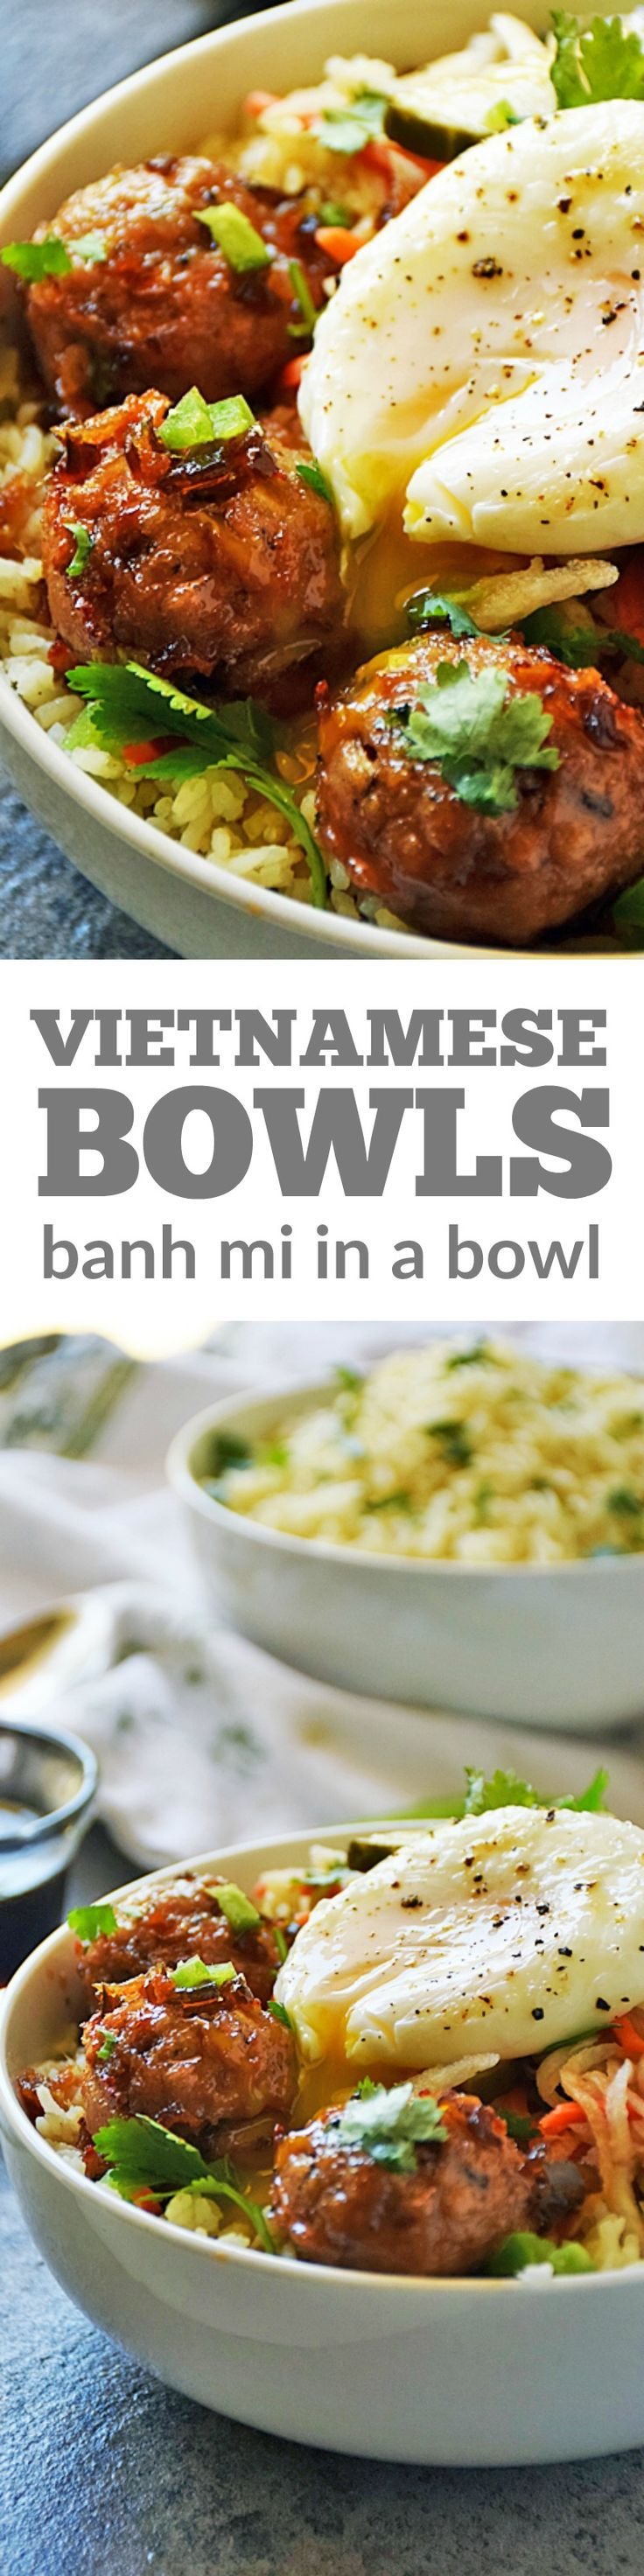 Vietnamese Banh Mi Bowl - A Vietnamese Banh Mi sandwich deconstructed and put over rice and then topped with a poached egg. Best of all it's an easy recipe using fresh ingredients to maximize flavor! #LTGrecipes: